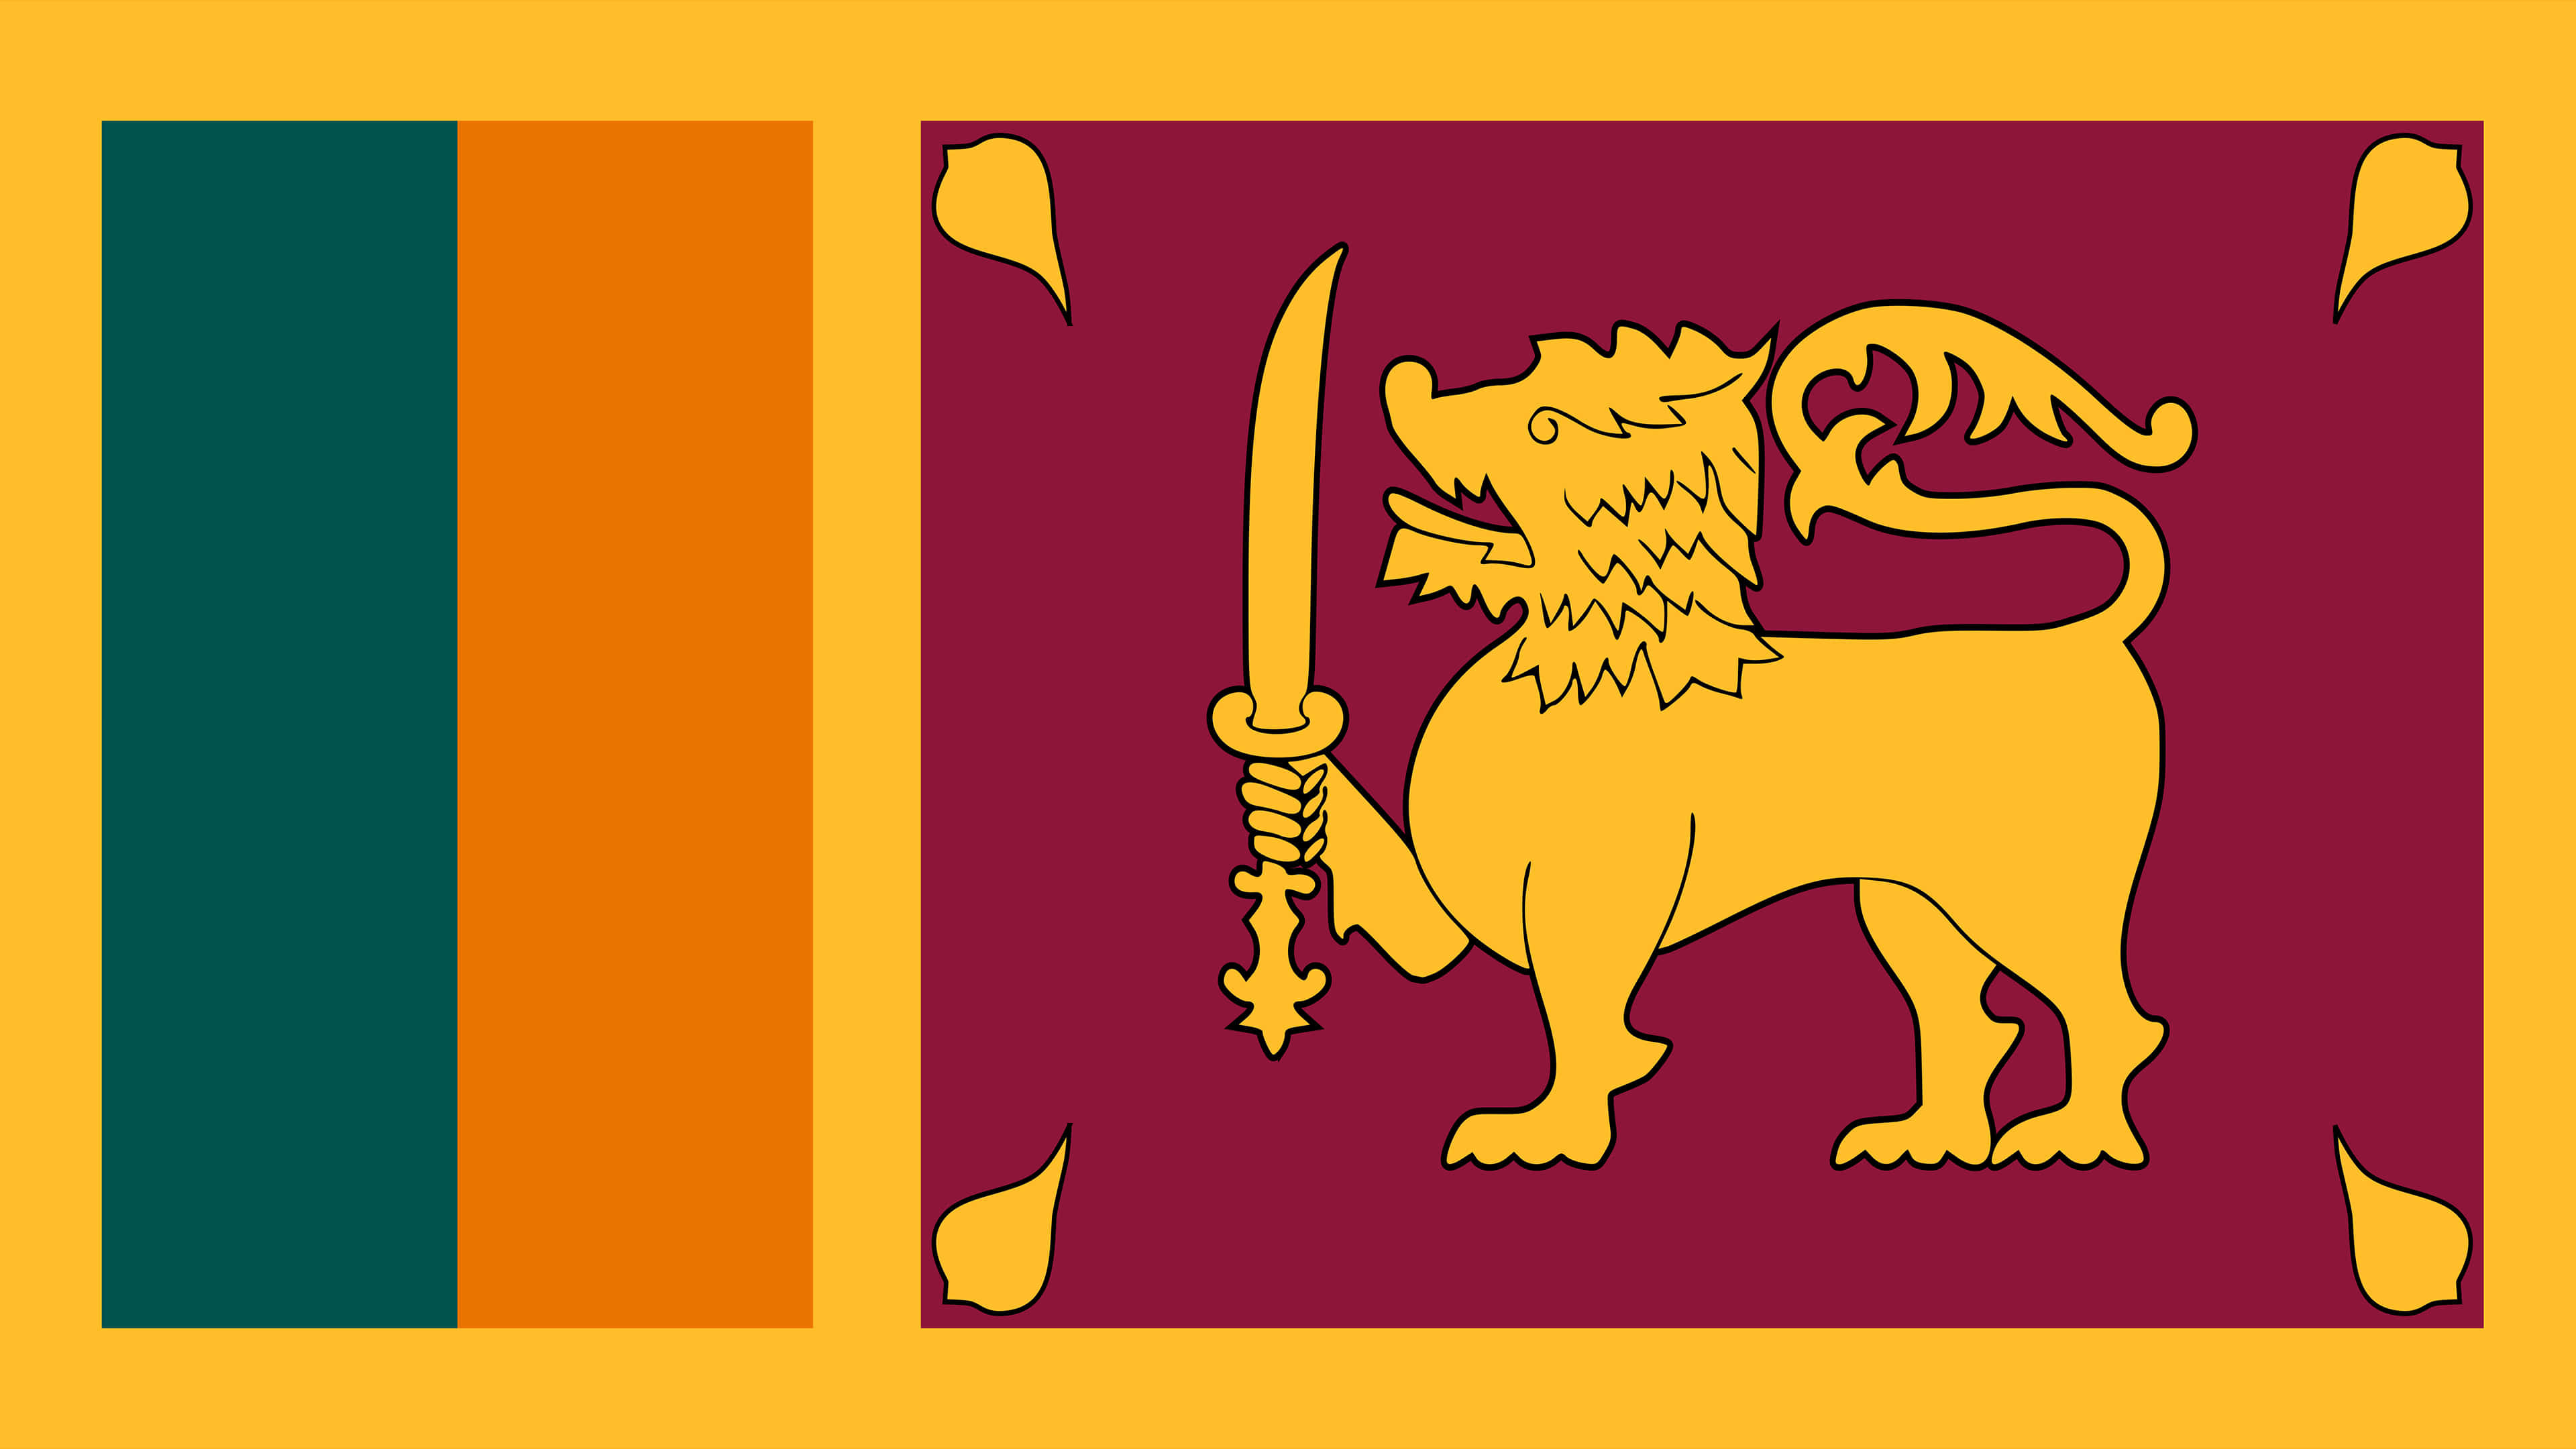 sri lanka flag uhd 4k wallpaper